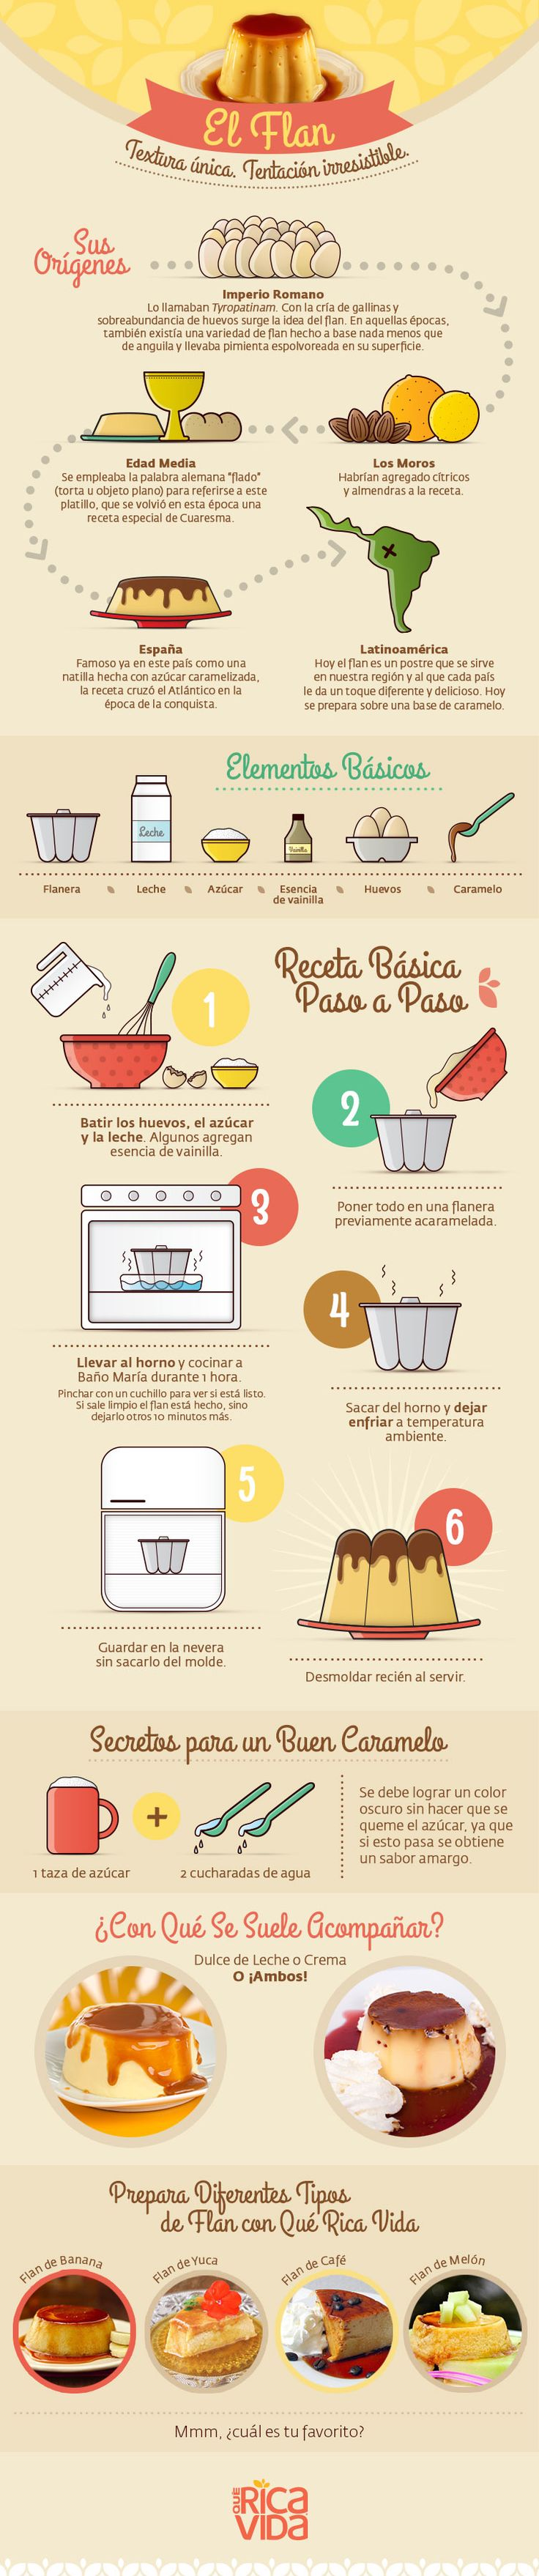 "Una Delicia ""Flan-tástica"" #infographic #flan #spanish"